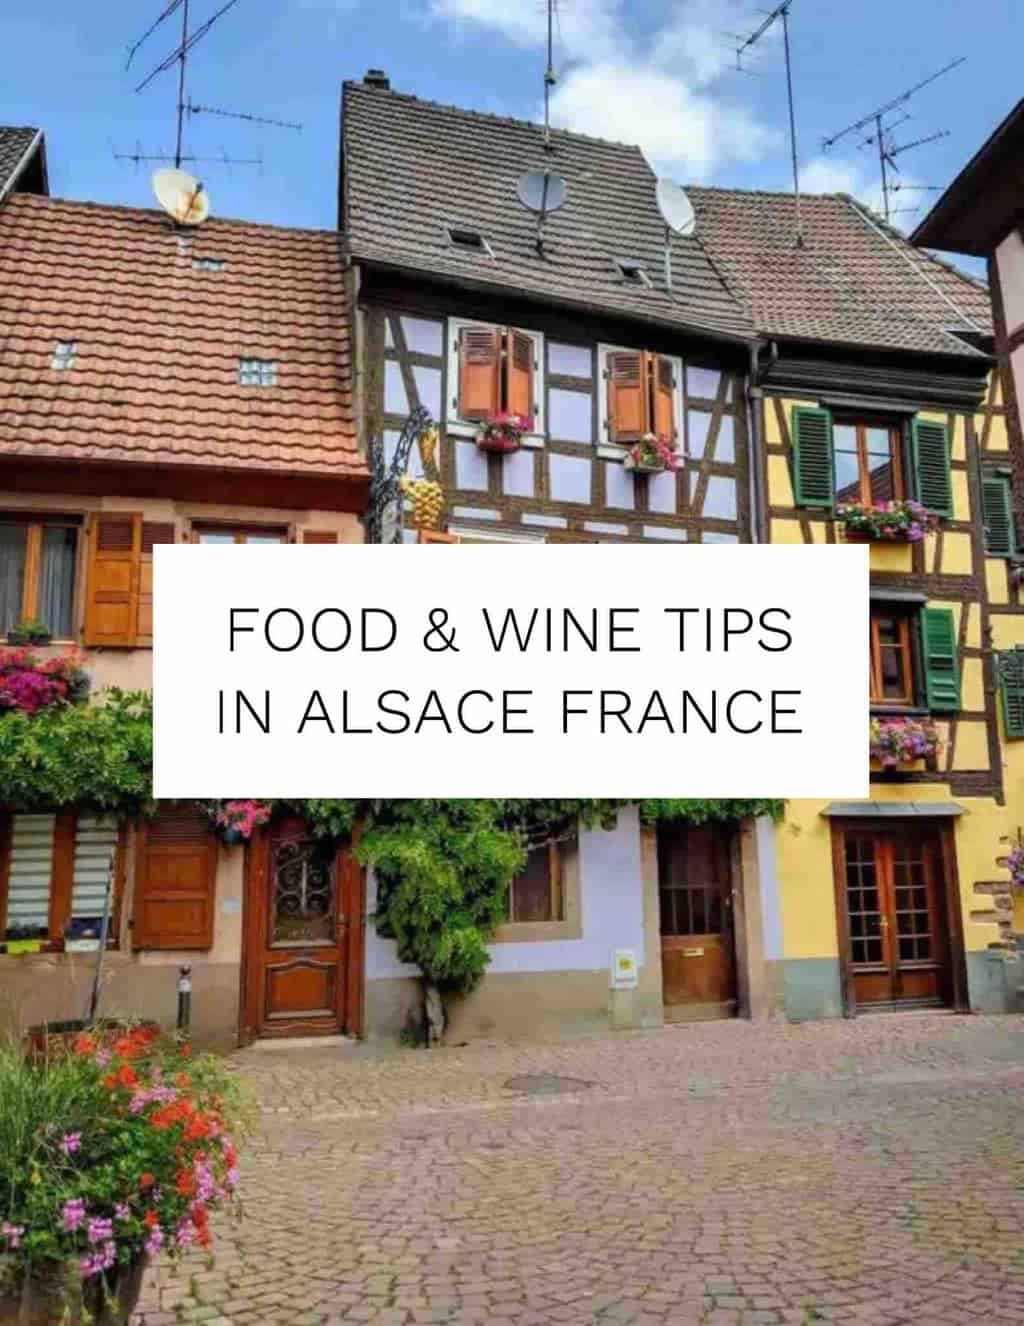 Food and Wine tips in Alsace France